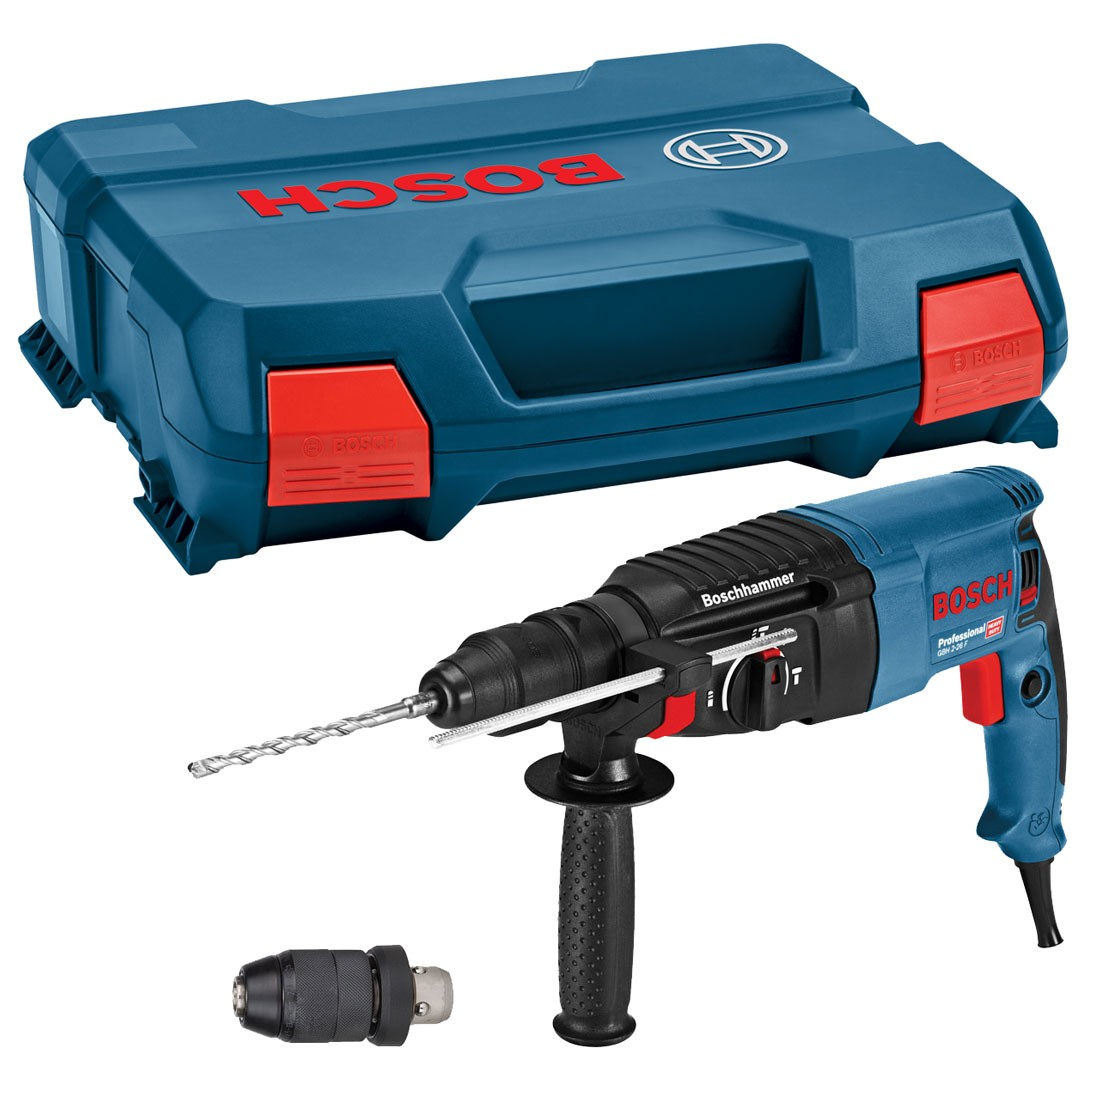 Gbh 226 Dfr 8990 Bor Rotary Hammer Bosch 3 28 Dre 2 26 F Sds Plus Drill In Carry Case With Qcc